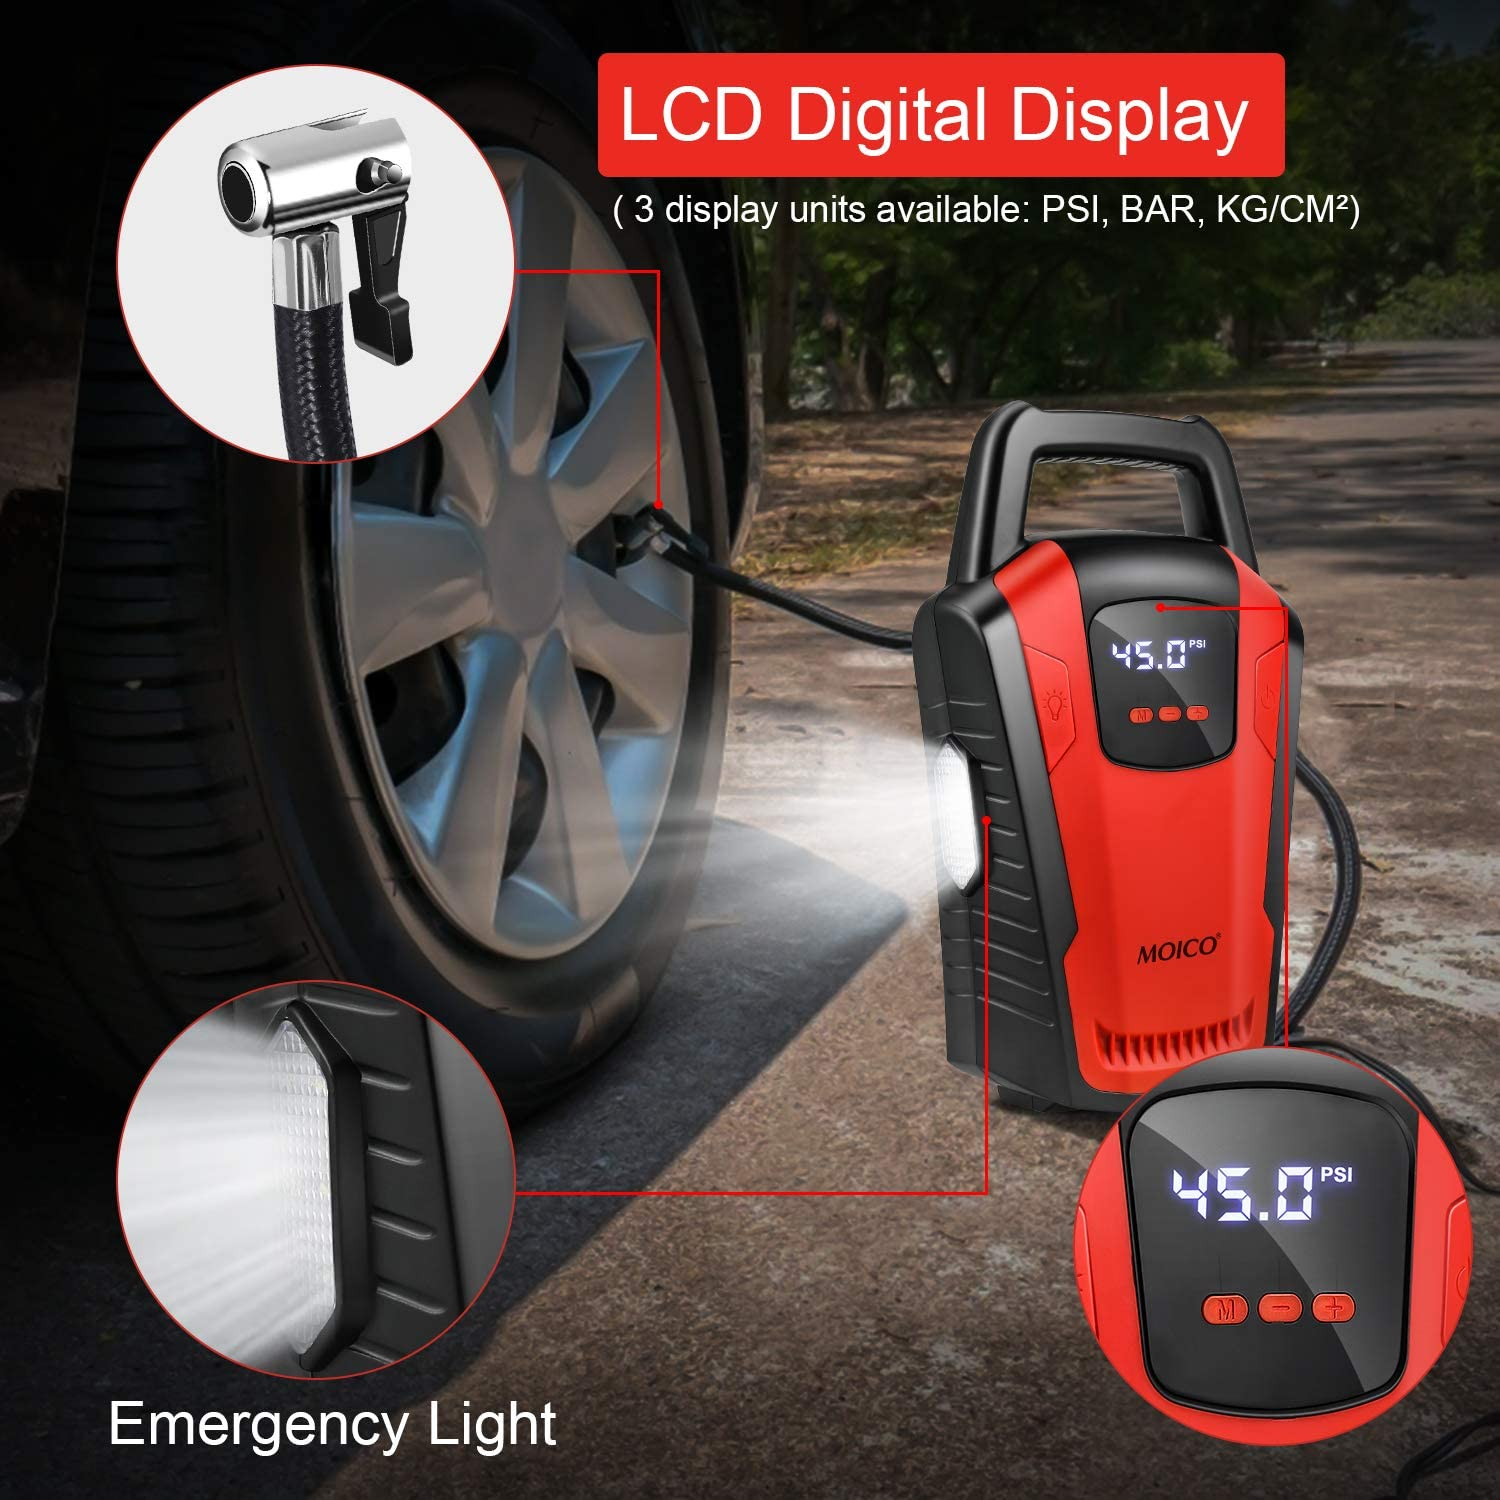 150 PSI for Cars Trucks Bicycles Bright Emergency Flashlight Portable Inflatable Pump CZK 3650 - 12V DC Car Tire Pump with Digital Pressure Gauge